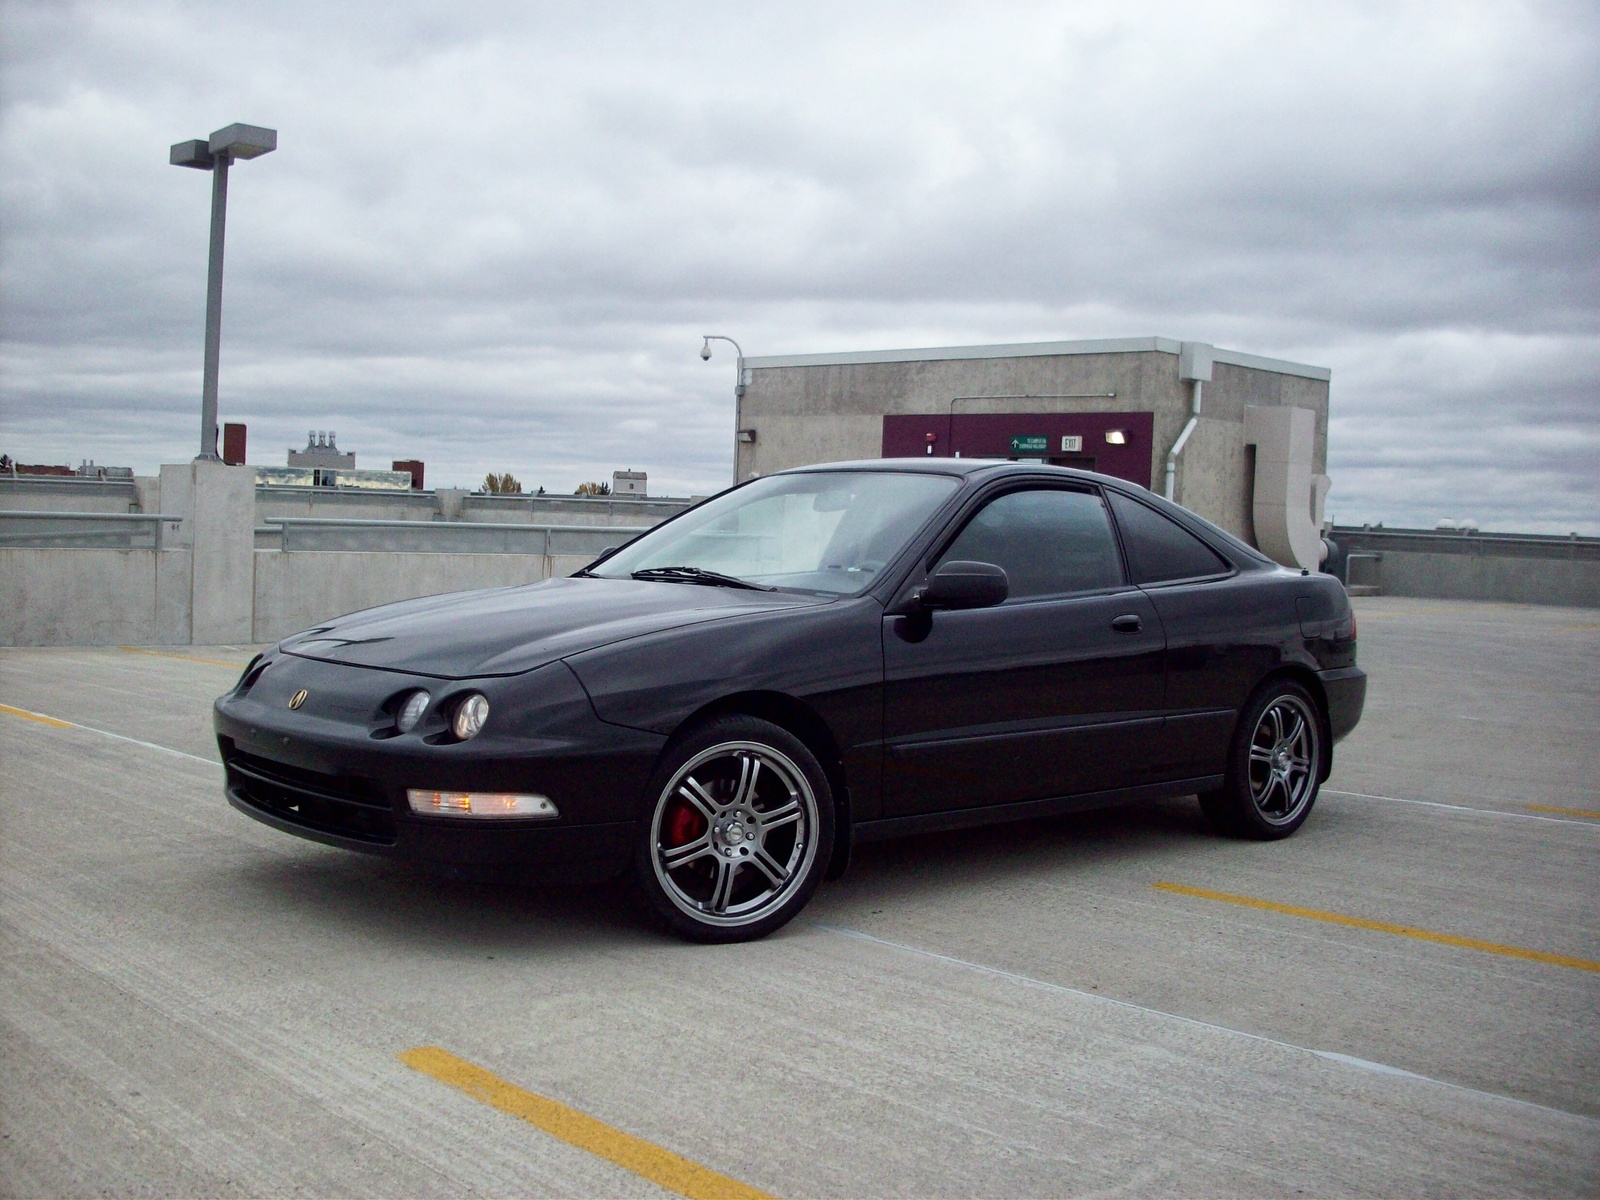 Acura Integra RS #18